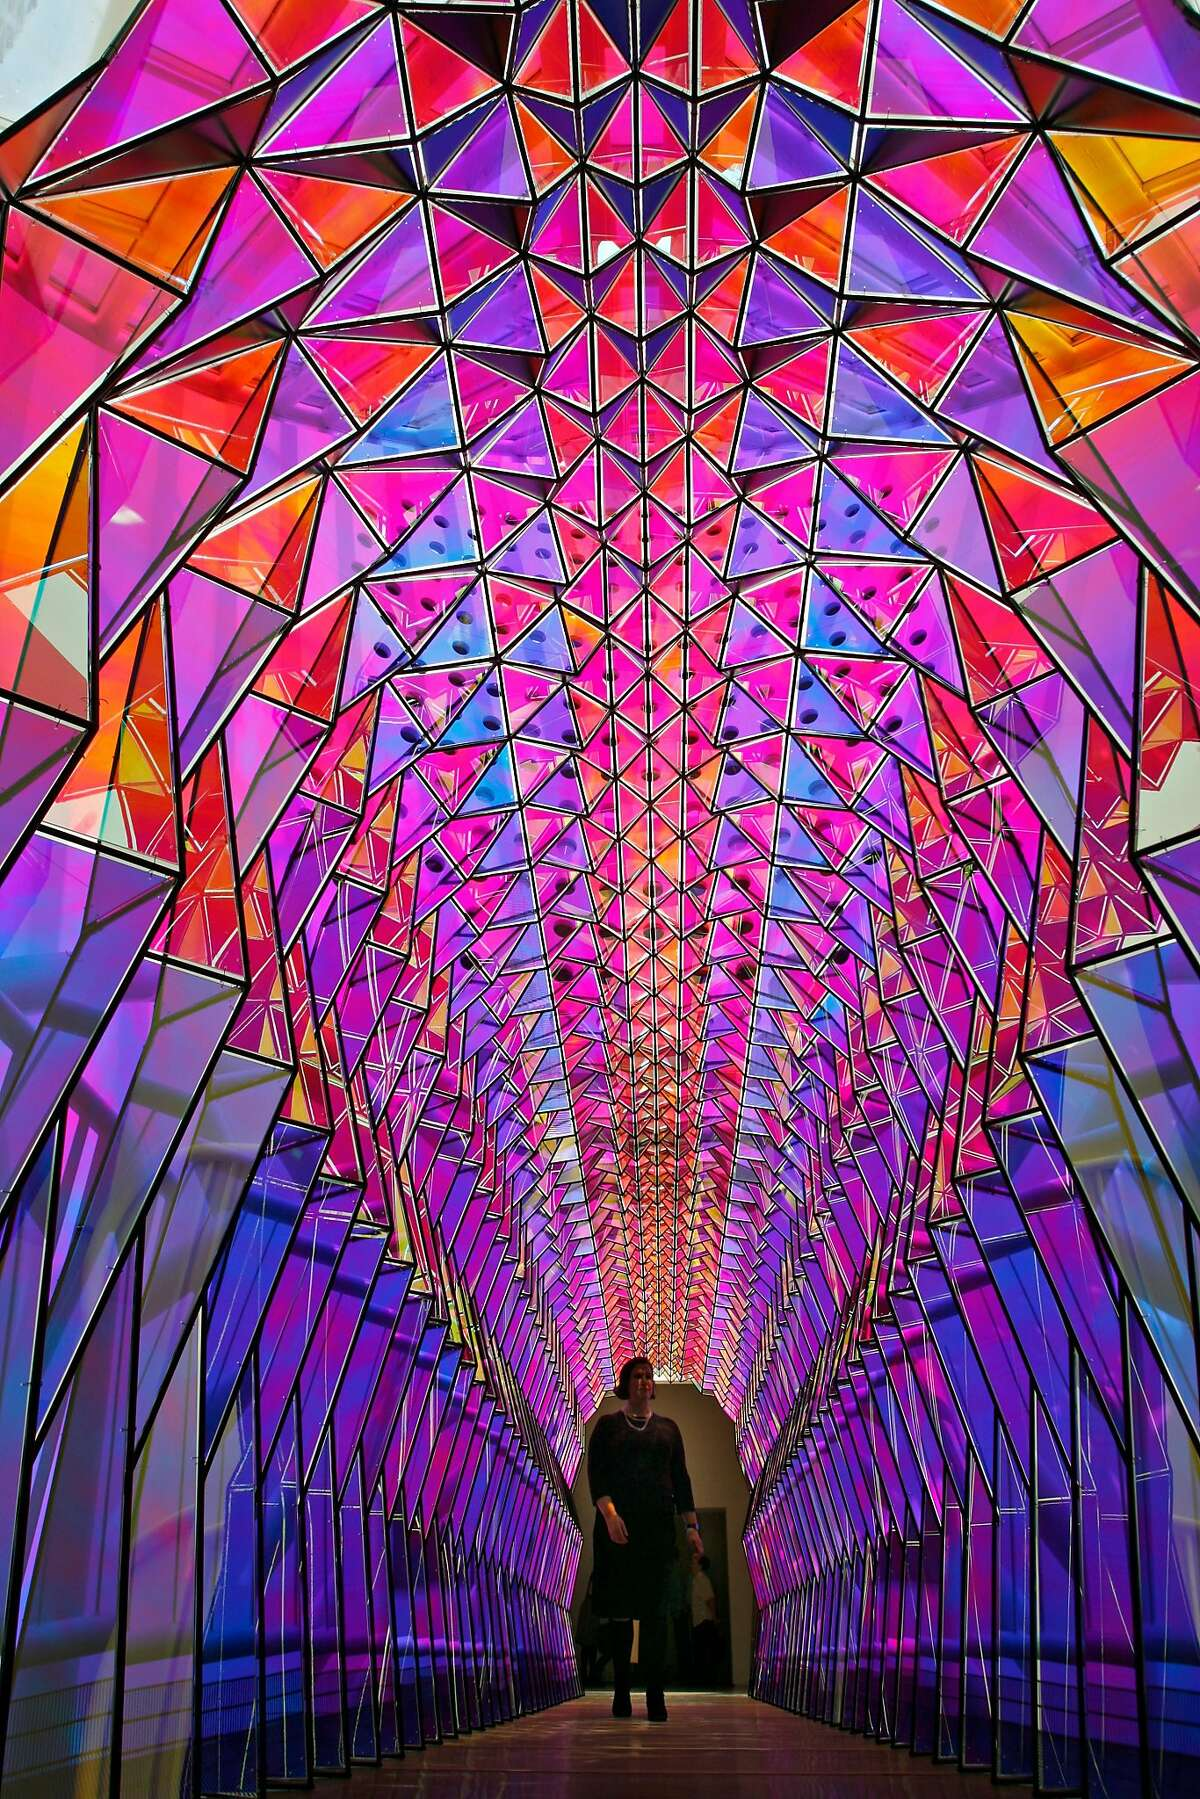 One-Way colour tunnel done with acrylic mirrors. Olafur Eliasson's show at SFMOMA. WEDNESDAY, SEPT 5, 2007 KURT ROGERS SAN FRANCISCO SFC THE CHRONICLE ELIASSON08_067_kr.jpg Ran on: 09-08-2007 A color tunnel created out of acrylic mirrors guides visitors through Take Your Time, Olafur Eliassons San Francisco Museum of Modern Art exhibition of full-room installations that prompt questions about freedom, reciprocity and self-knowledge.